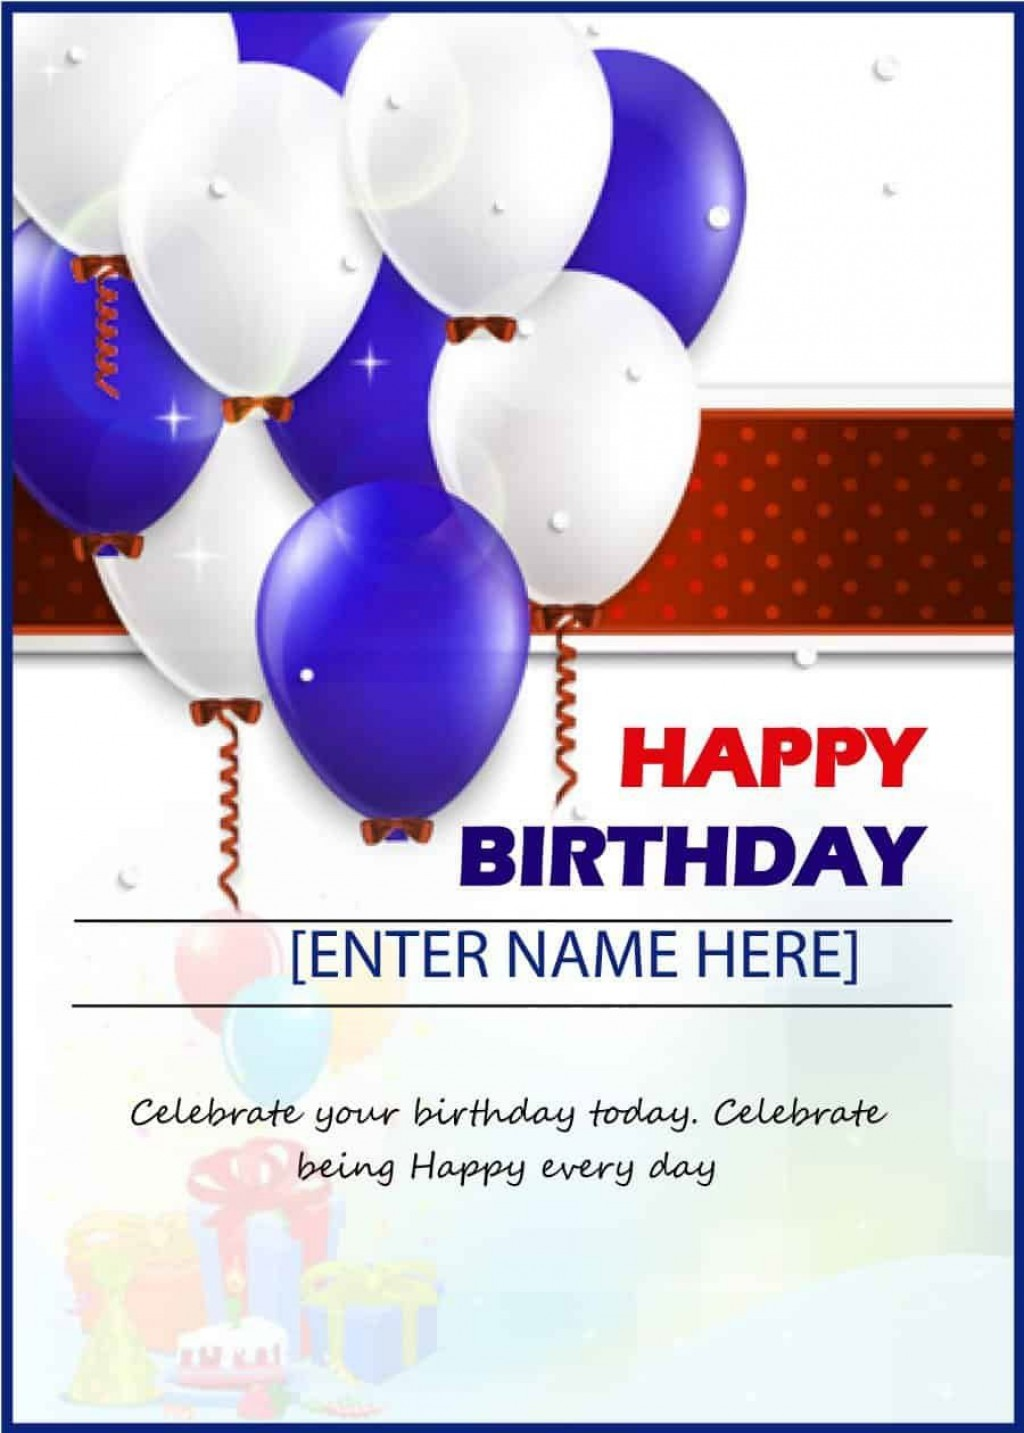 005 Unbelievable Birthday Card Template For Microsoft Word Concept  Free Greeting LayoutLarge